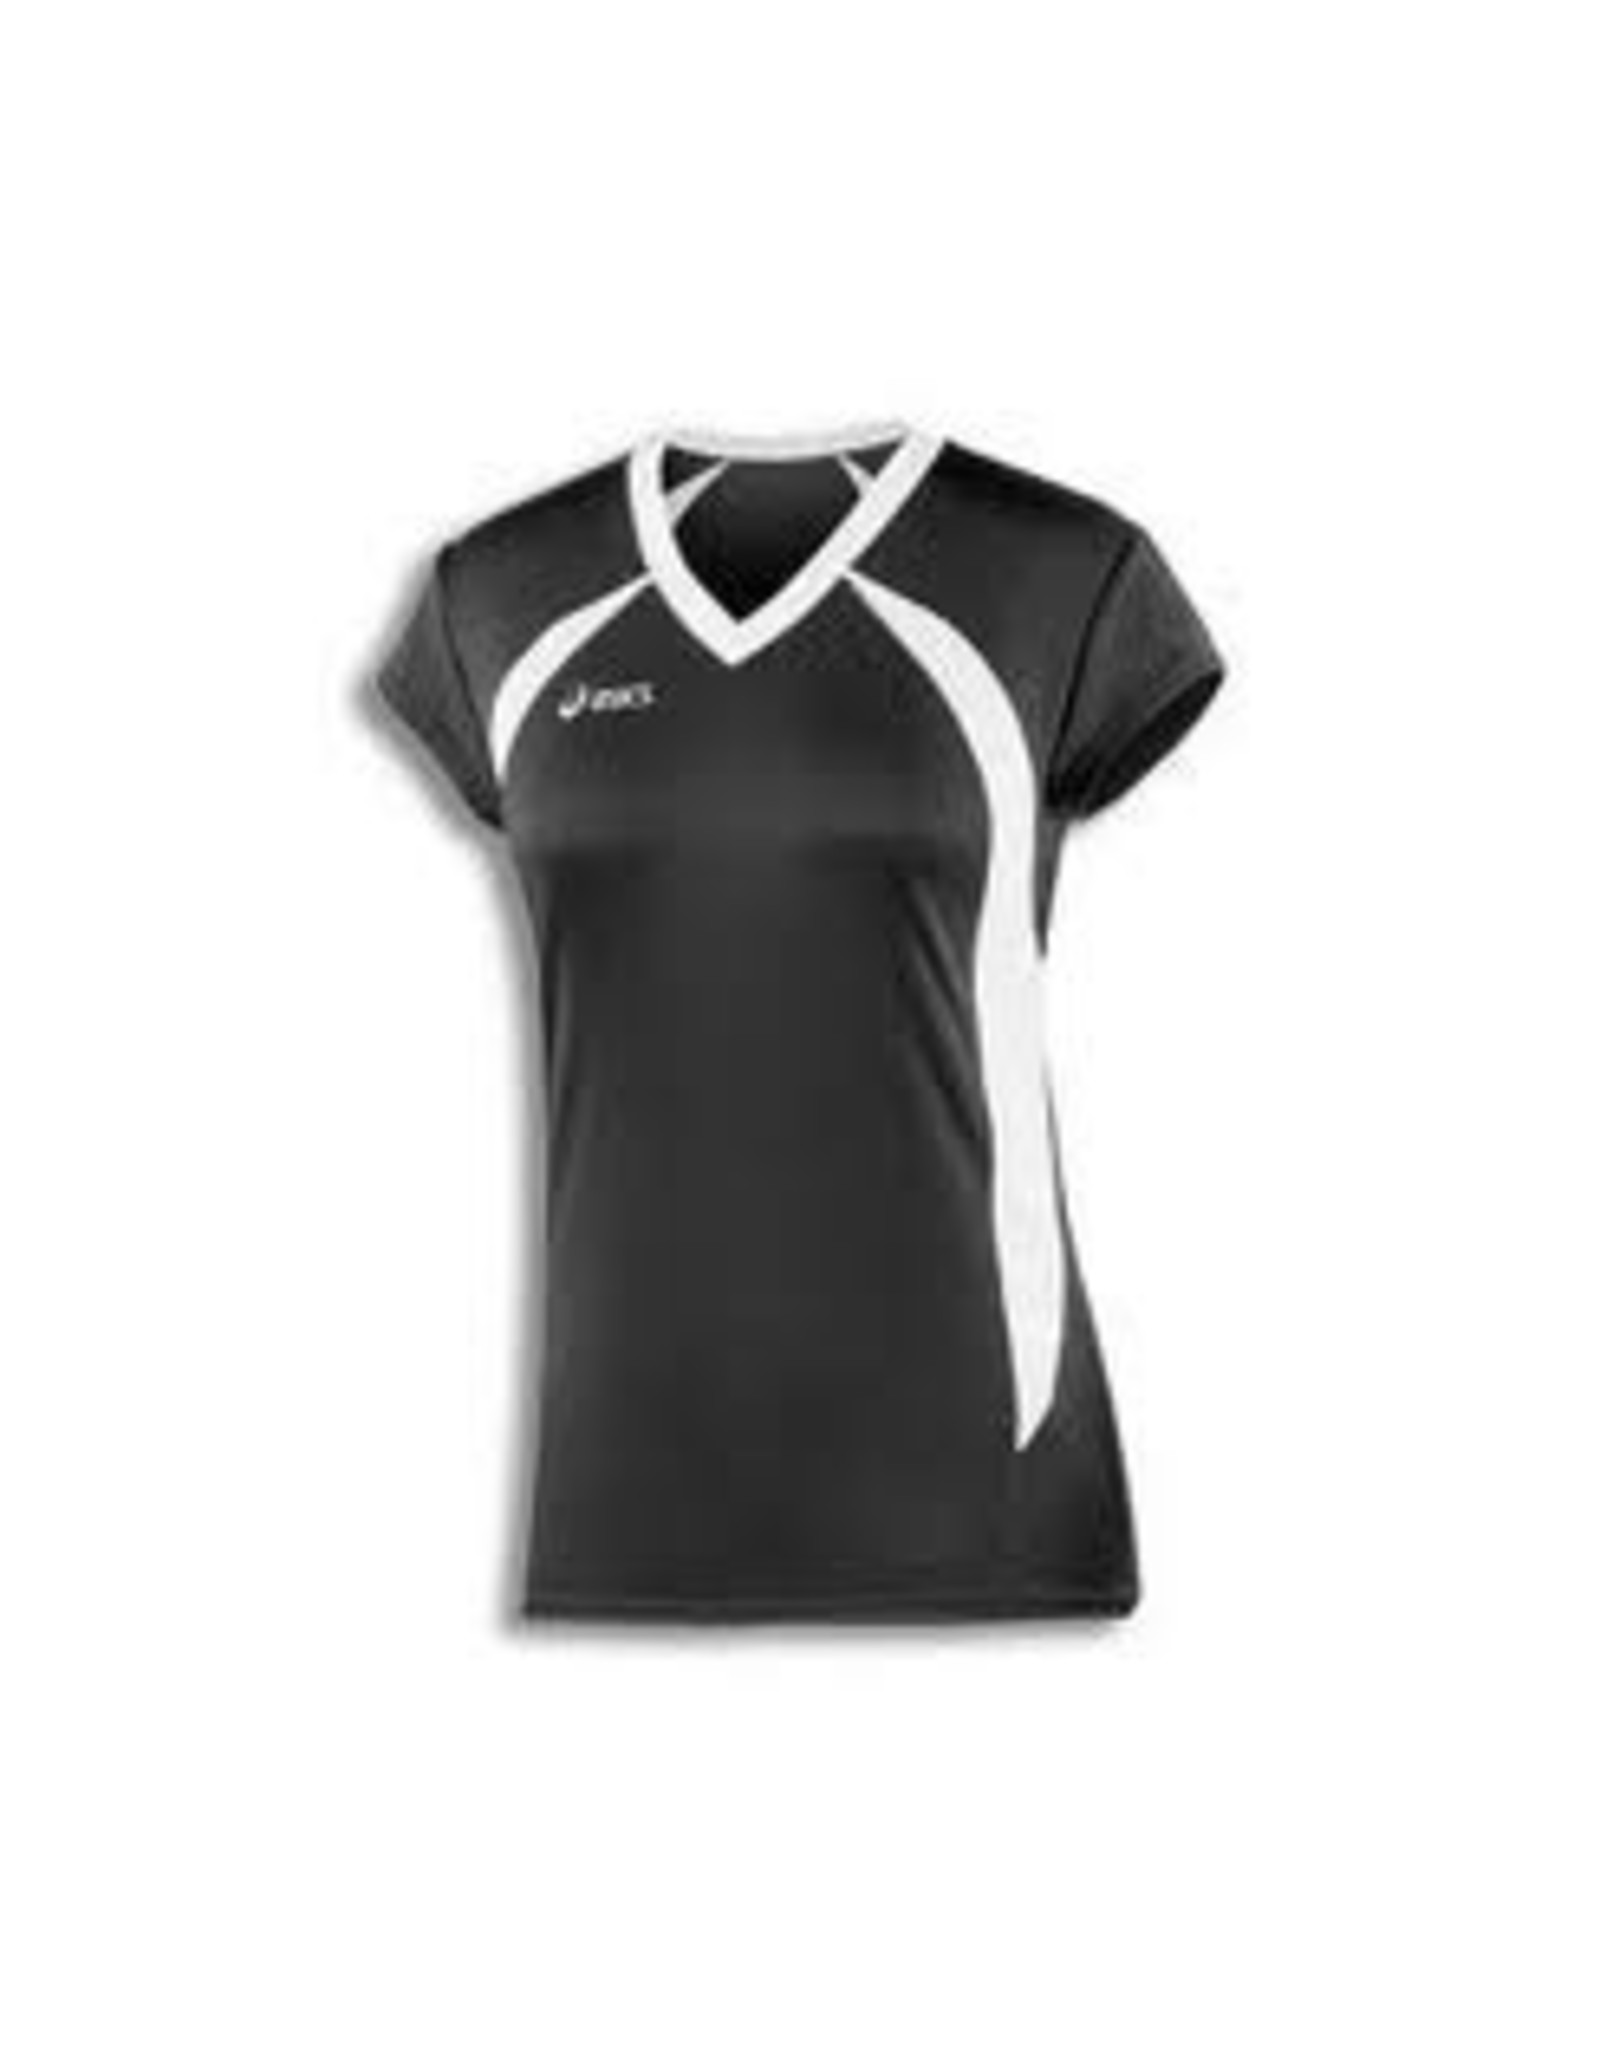 ASICS This jersey has been discontinued.  Once our stock is gone, we will no longer be able to offer this jersey.